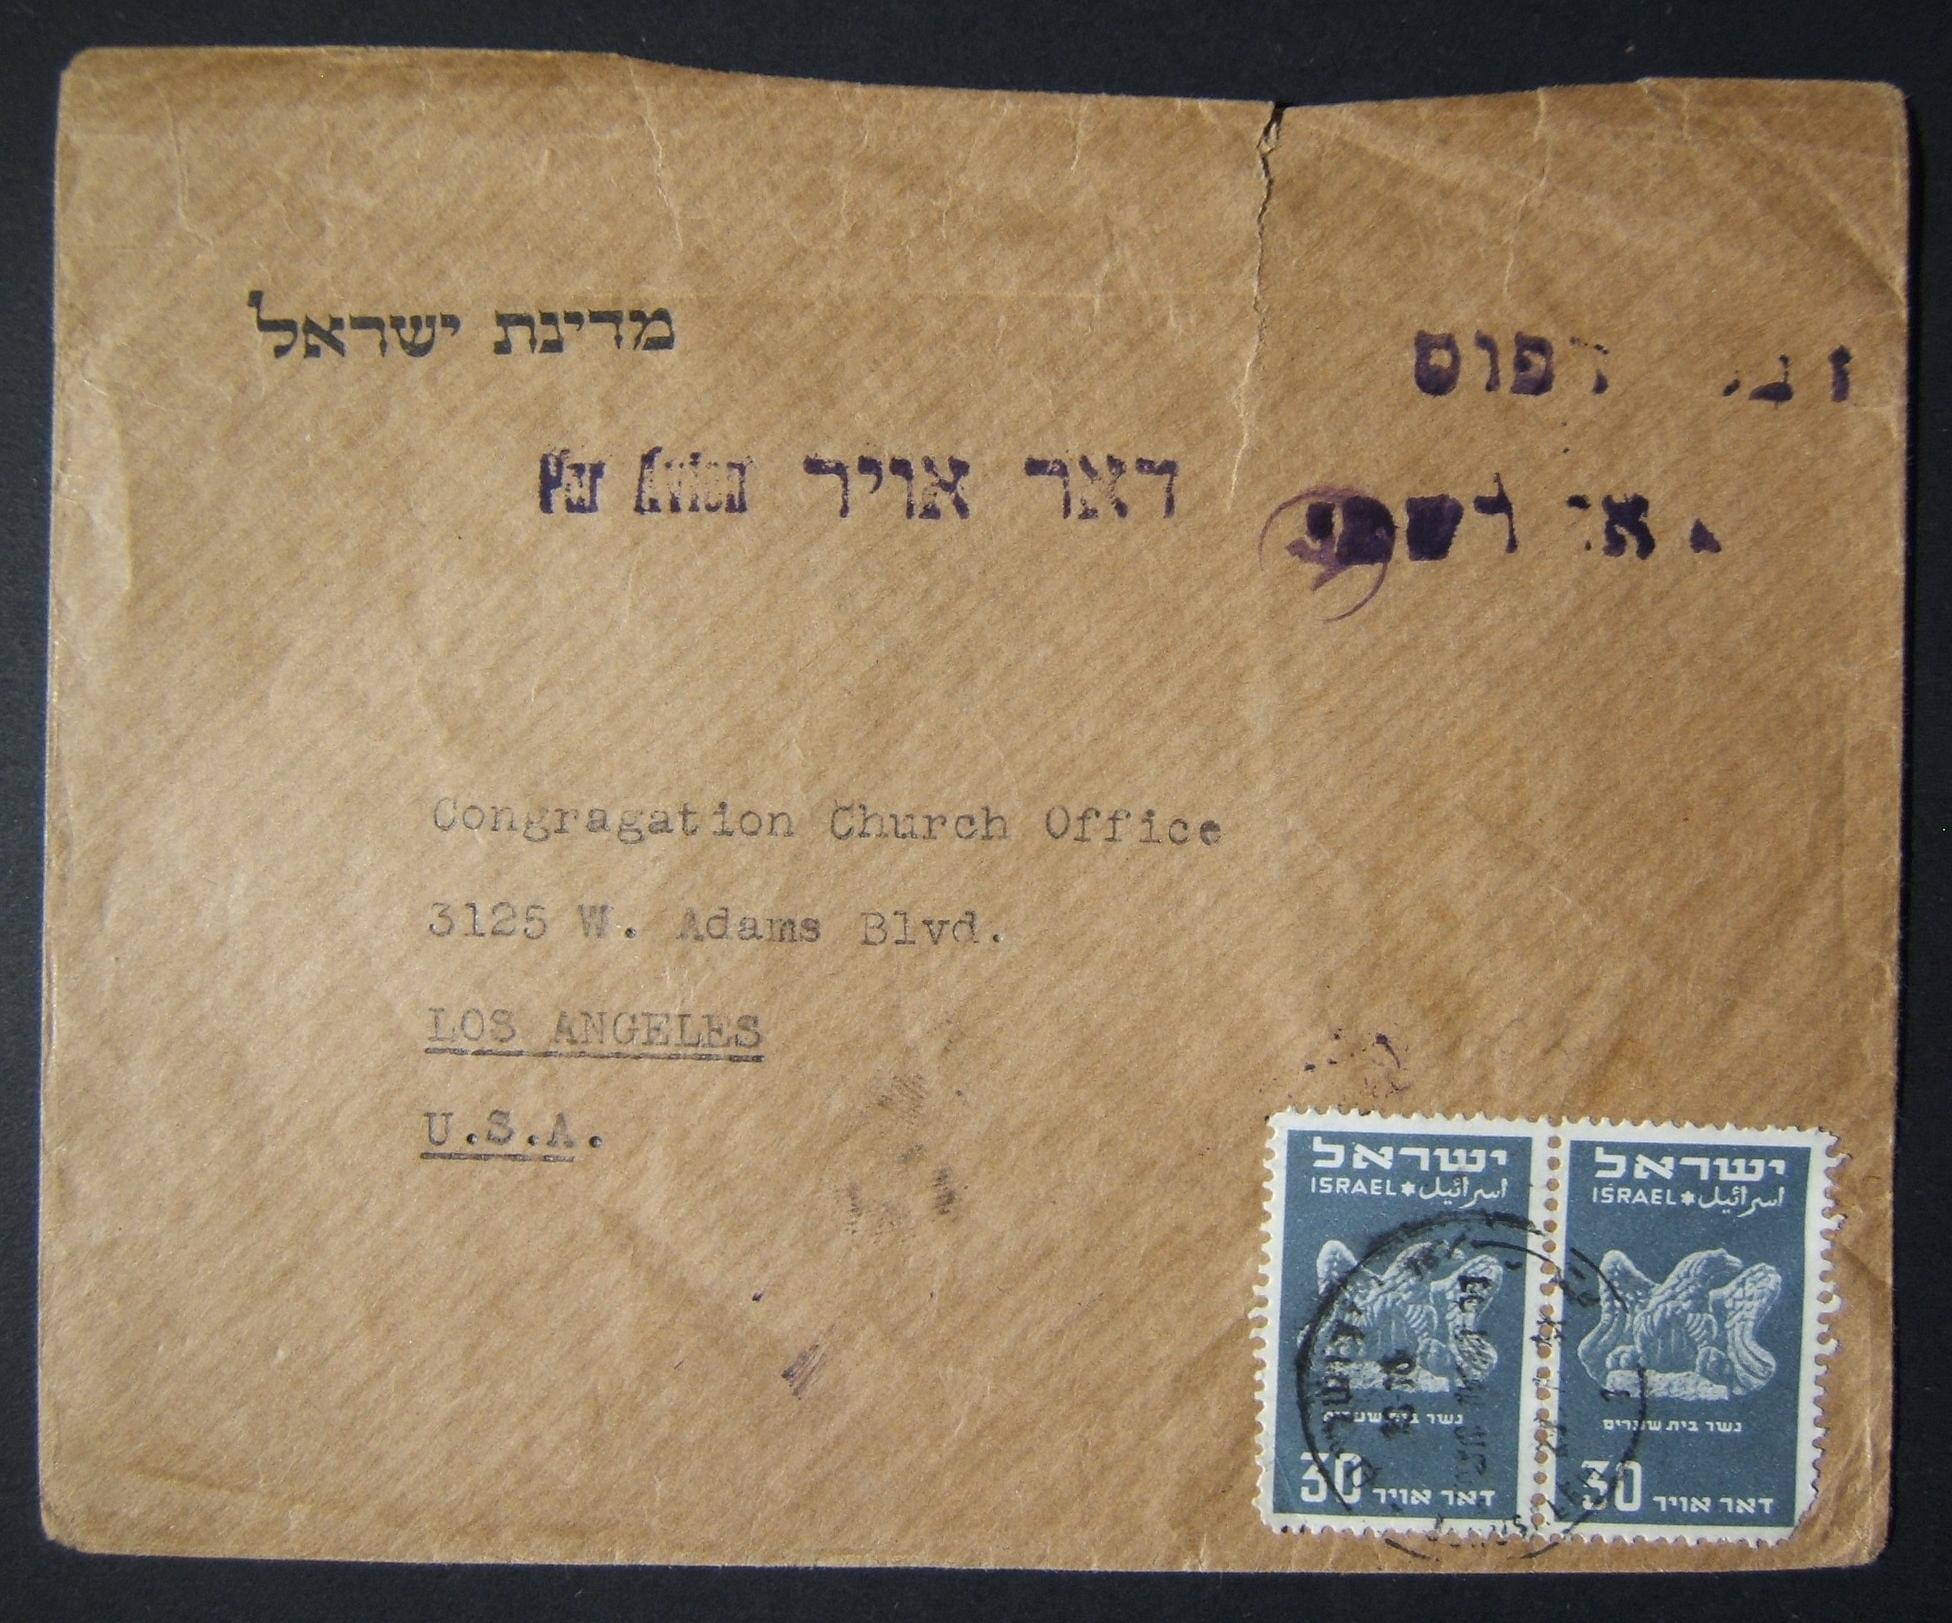 1950 1st airmail / PO's, rates & routes: 29-7-1951 government stationary official printed matter airmail cover ex JERUSALEM (Religious Affairs Ministry, cachet on back) to LOS ANGE